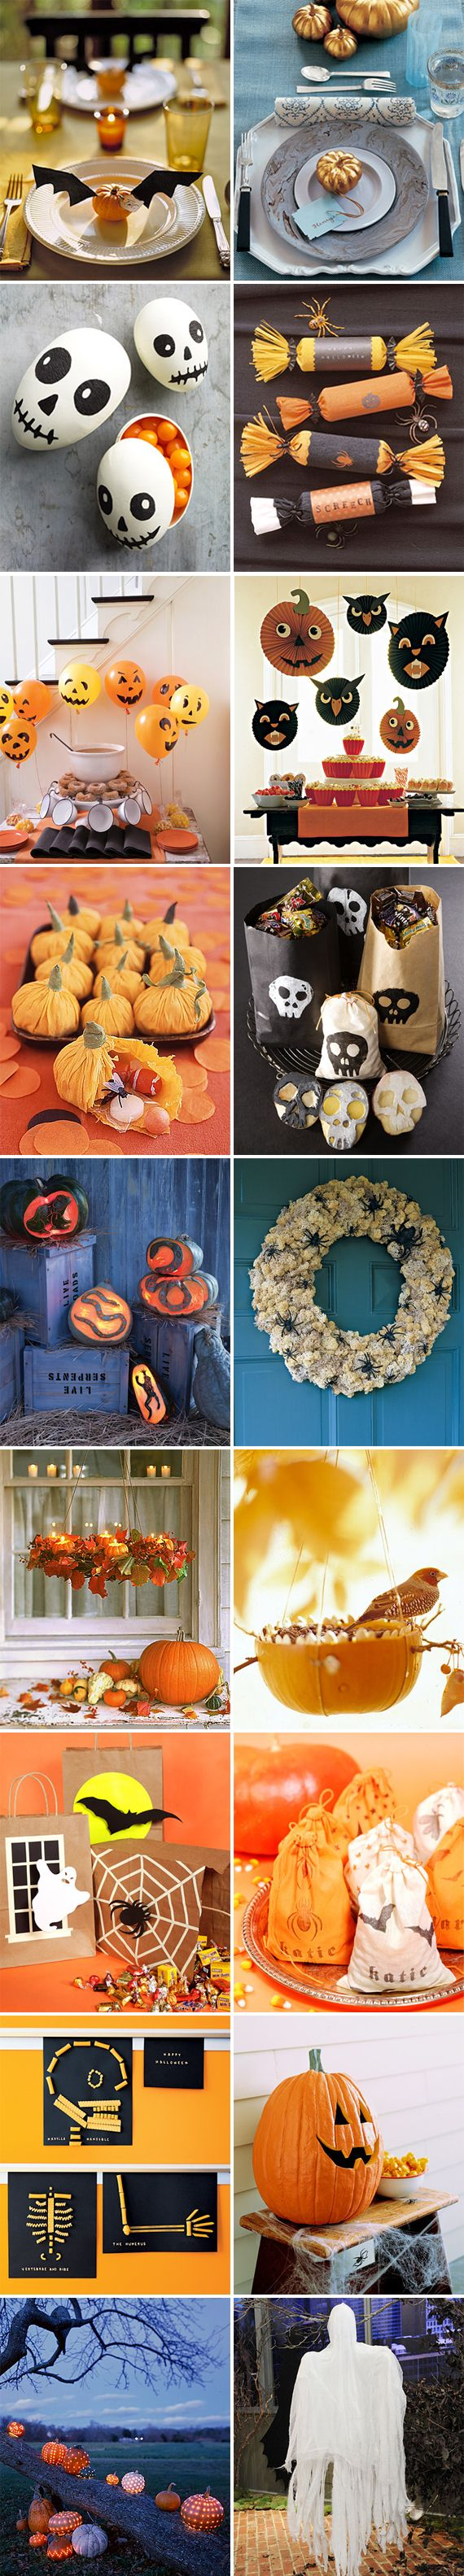 october: Halloween Decorations, Halloween Stuff, Decor Ideas, Martha Stewart Halloween, Halloween Parties Ideas, Halloween Crafts, Parties Stuff, Easter Eggs, Halloween Ideas